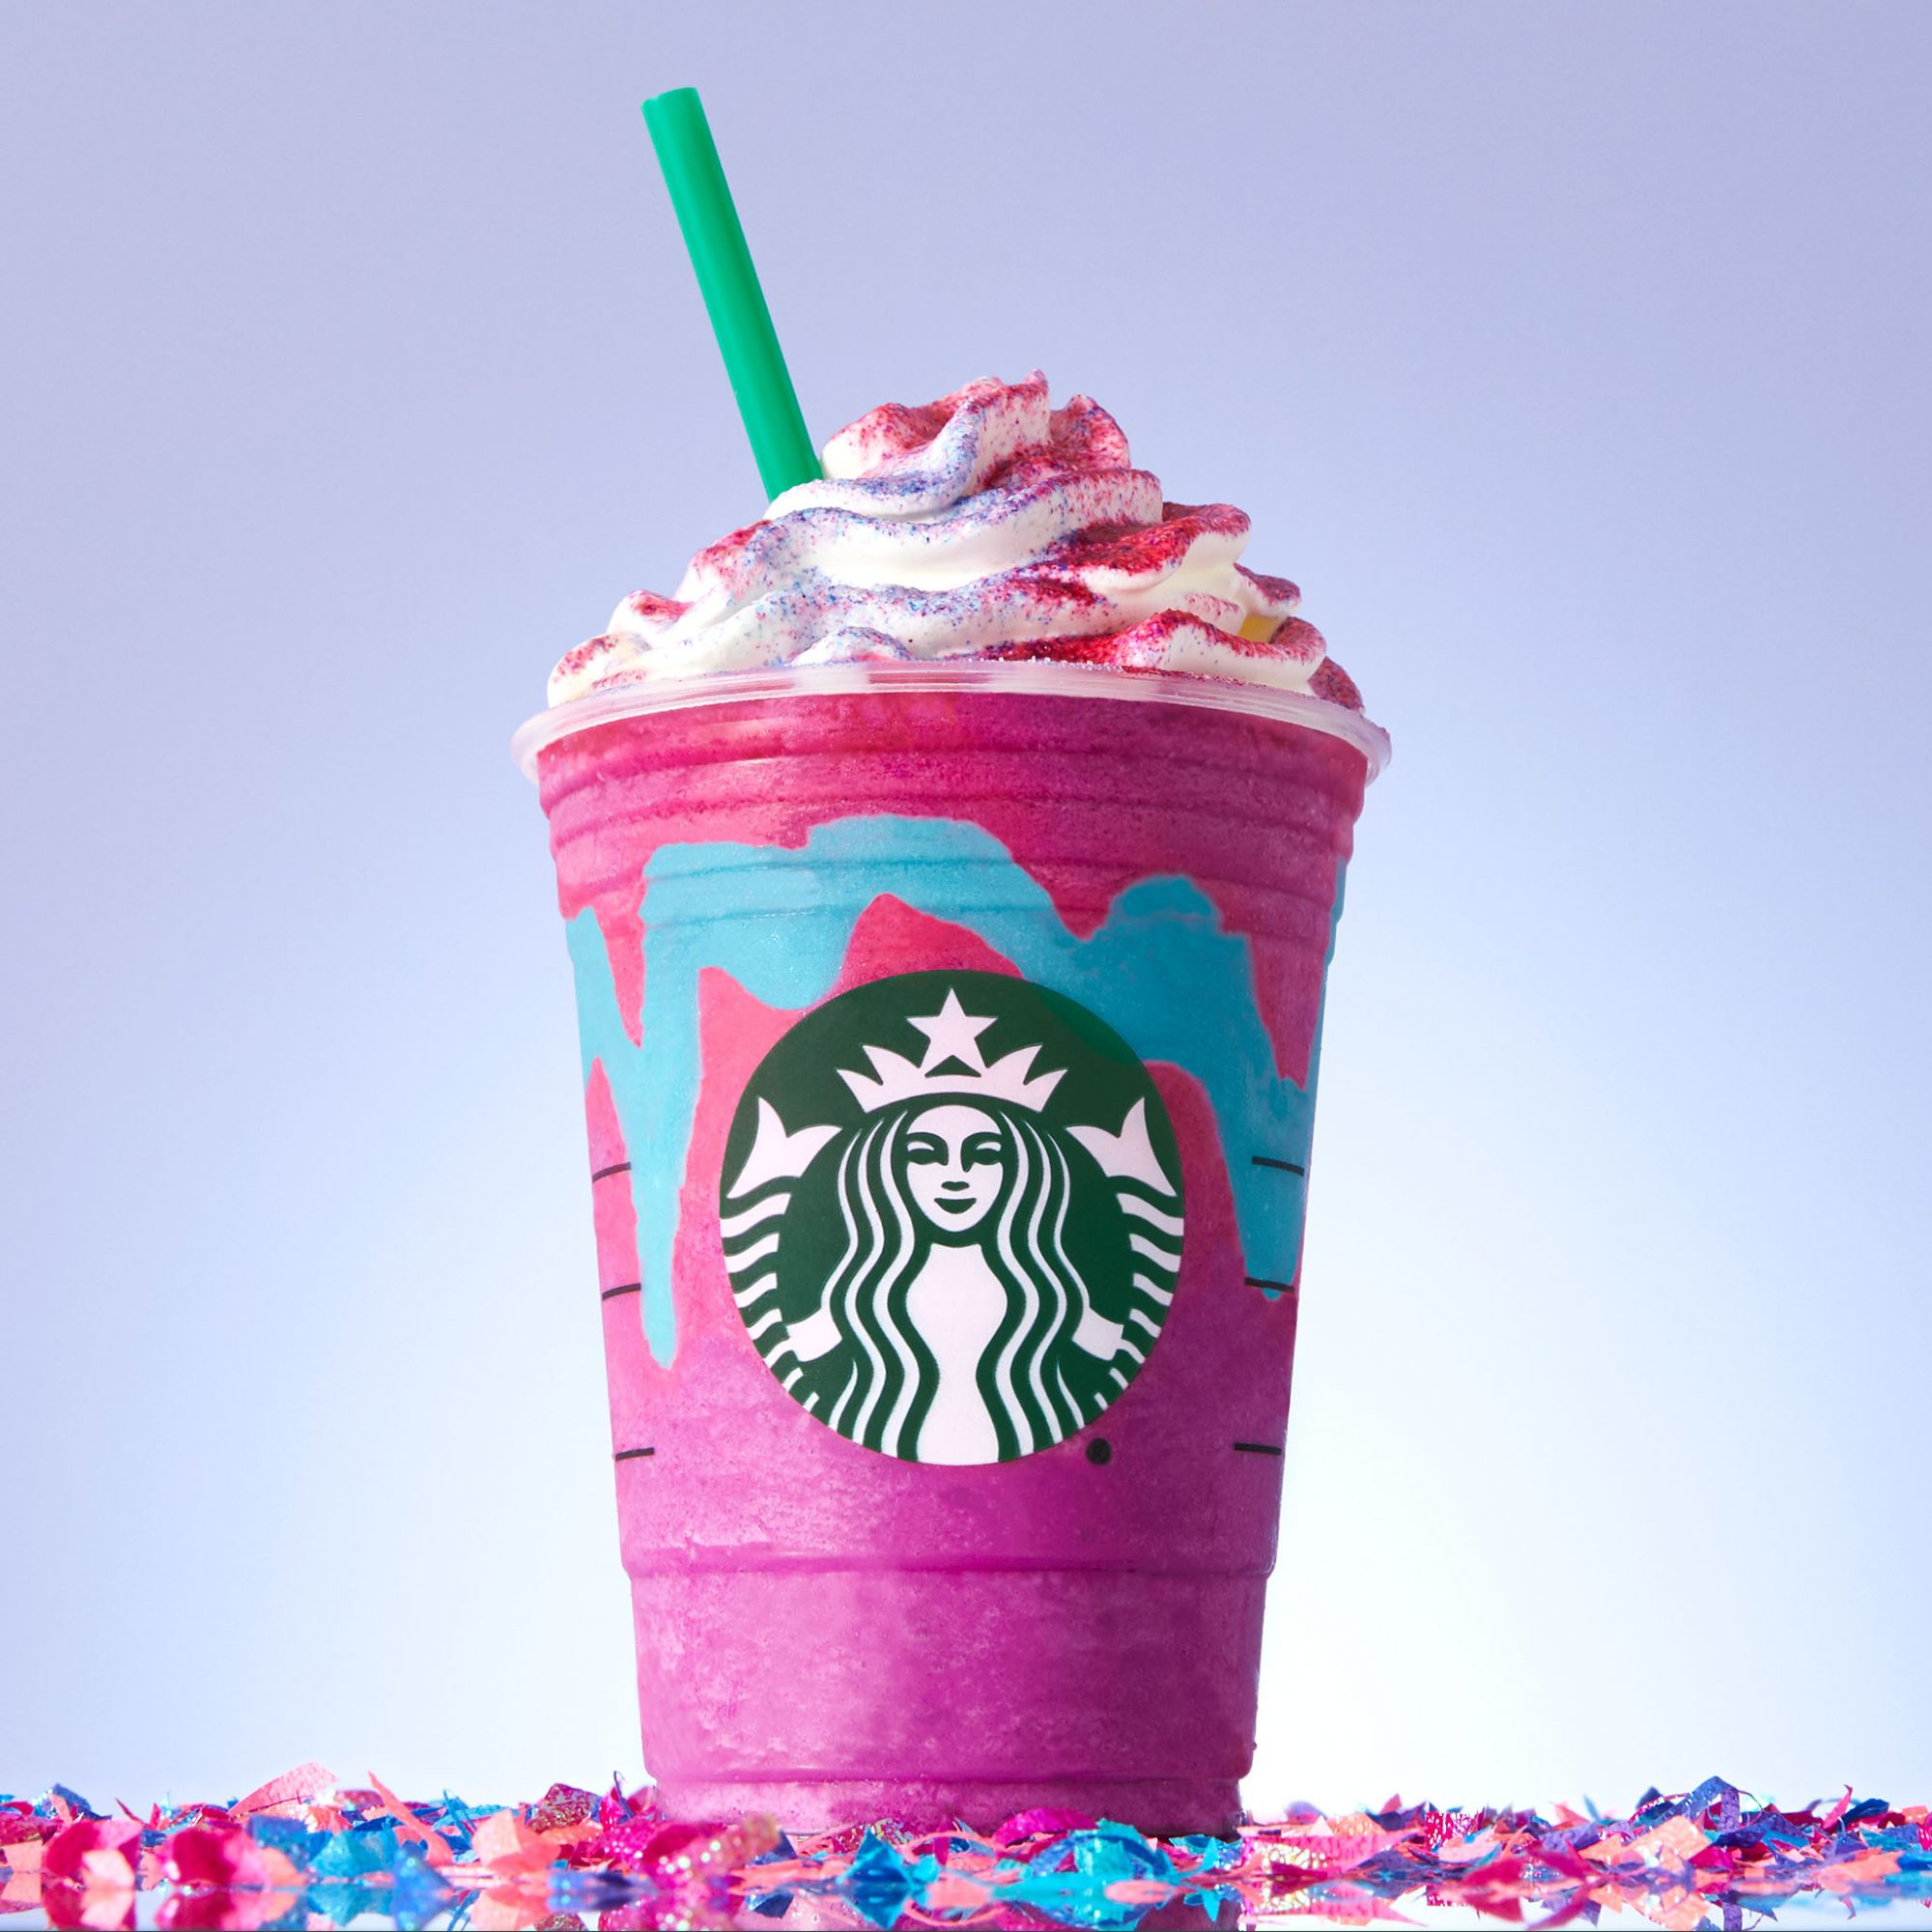 Starbucks Unicorn Frappuccinos Are Officially Real — But Get One Fast